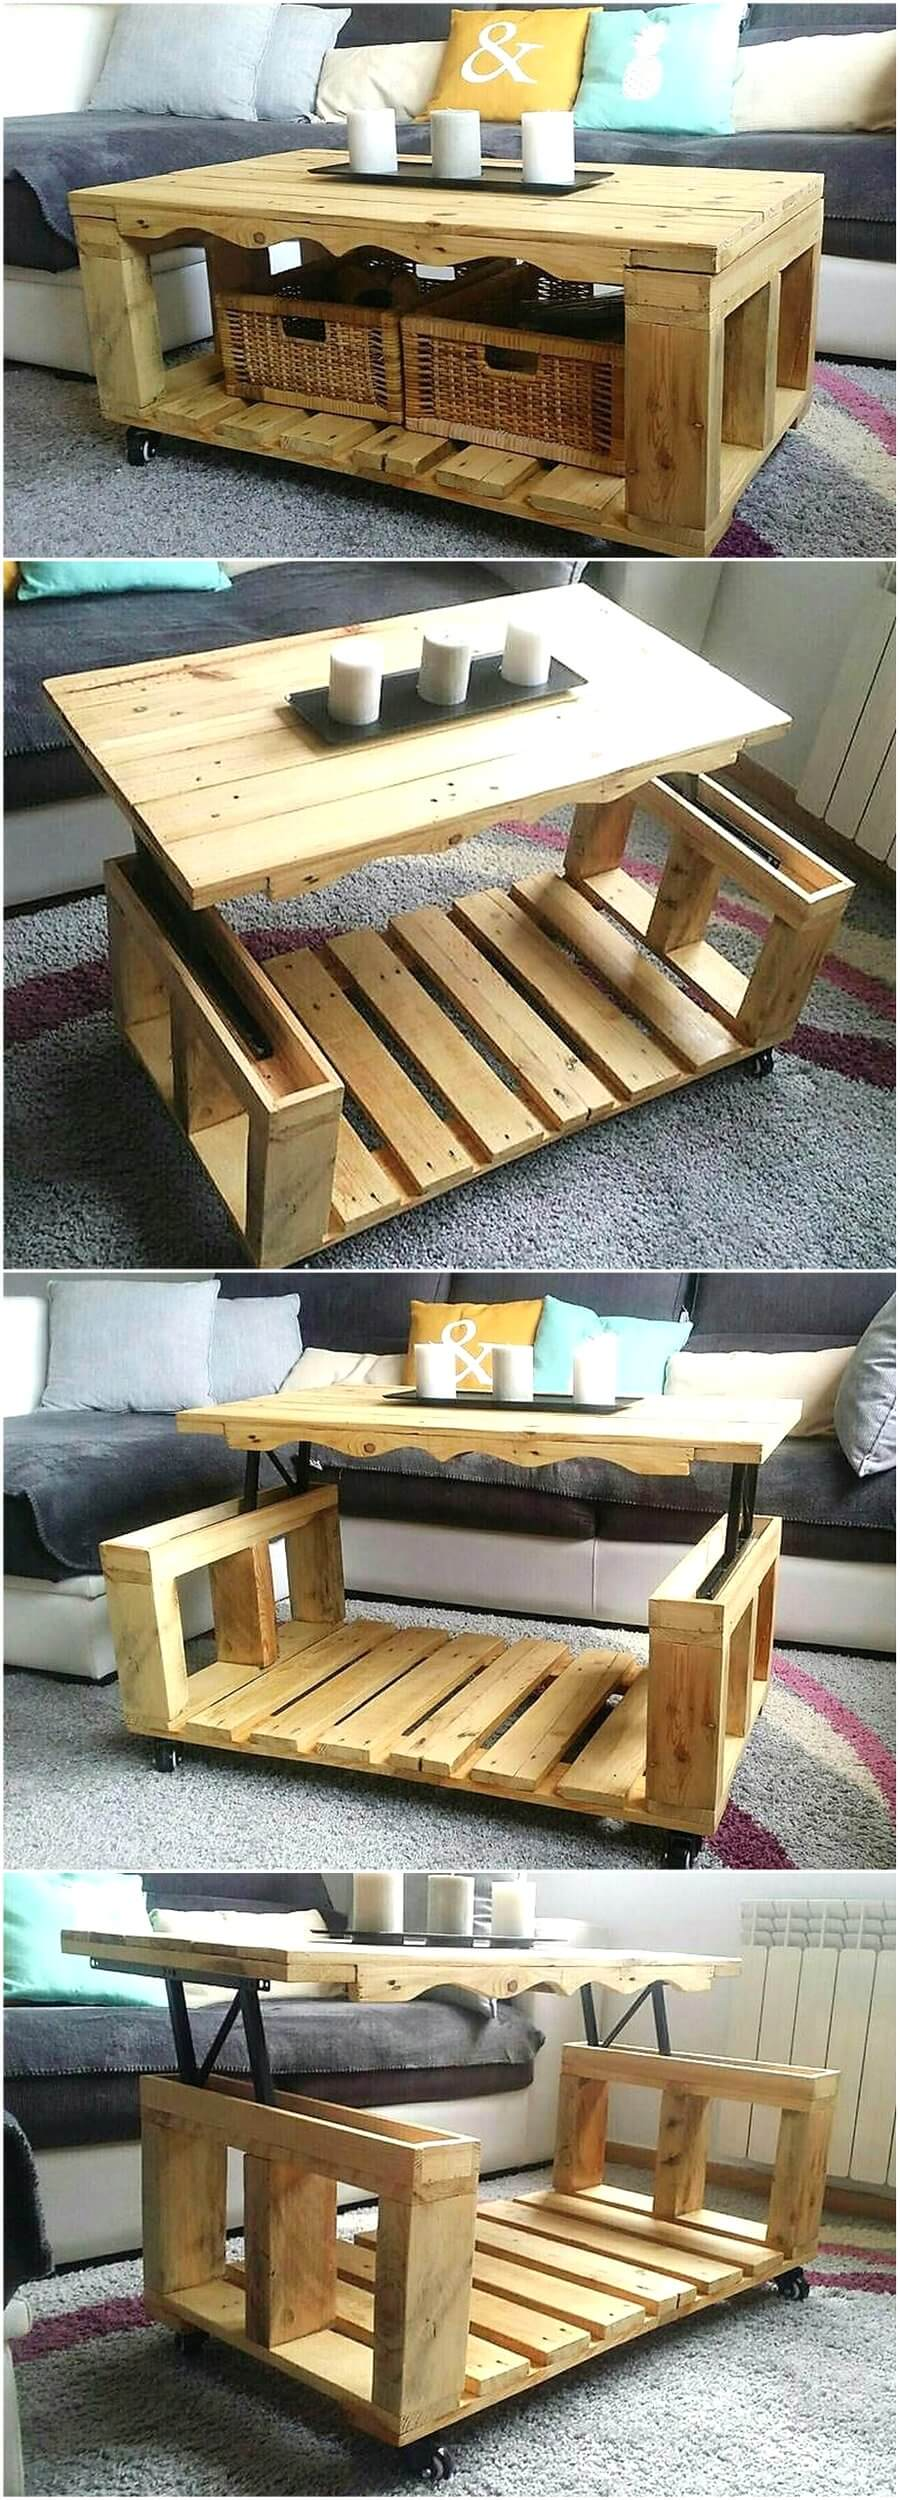 Repurposed wood pallets lift top coffee table pallet ideas repurposed wood pallets lift top coffee table geotapseo Image collections